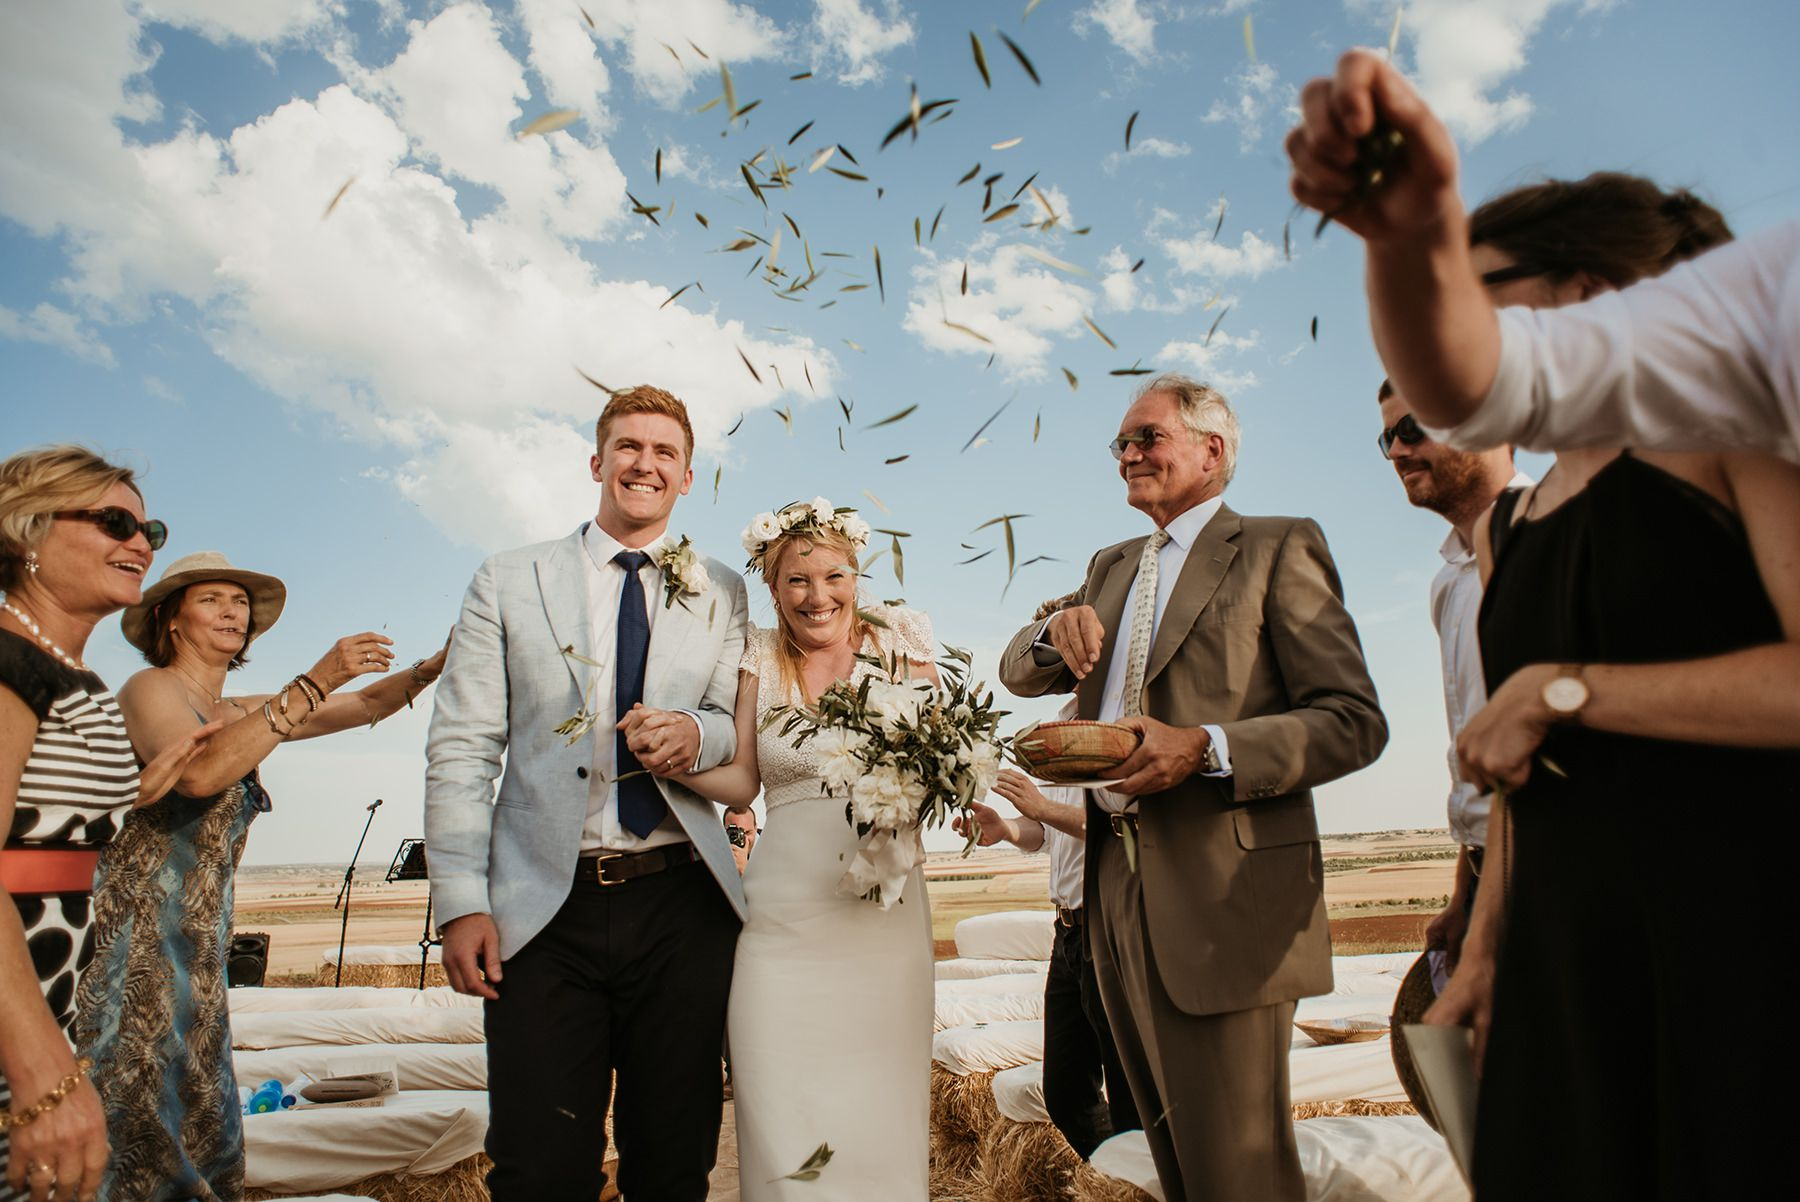 Over The Top Weddings: How To Plan An Extravagant Wedding